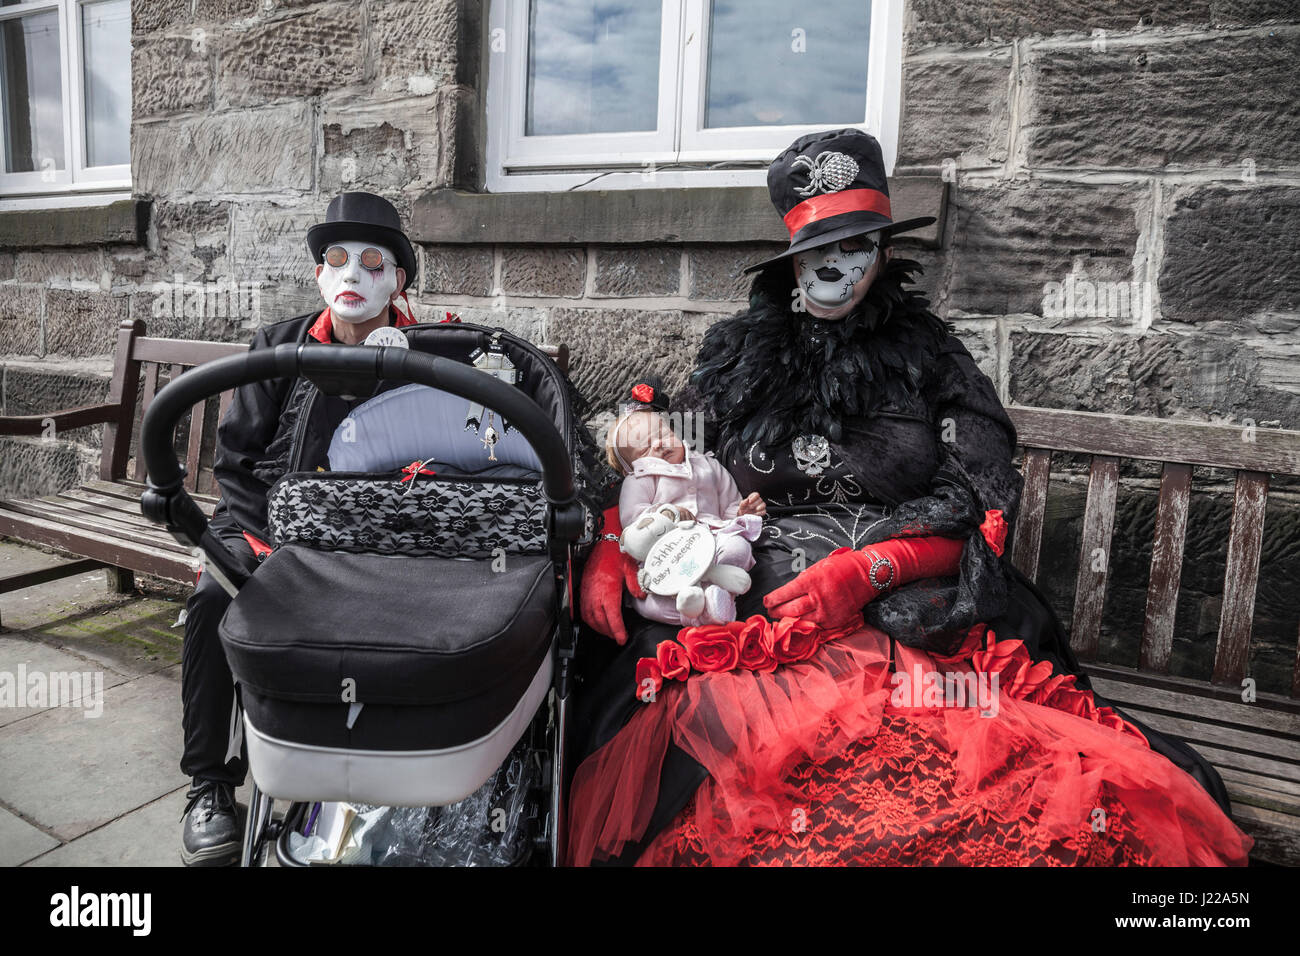 A male and female Goth sit on benches at the seaside at the Whitby Goth Weekend and she cradles a lifelike baby - Stock Image